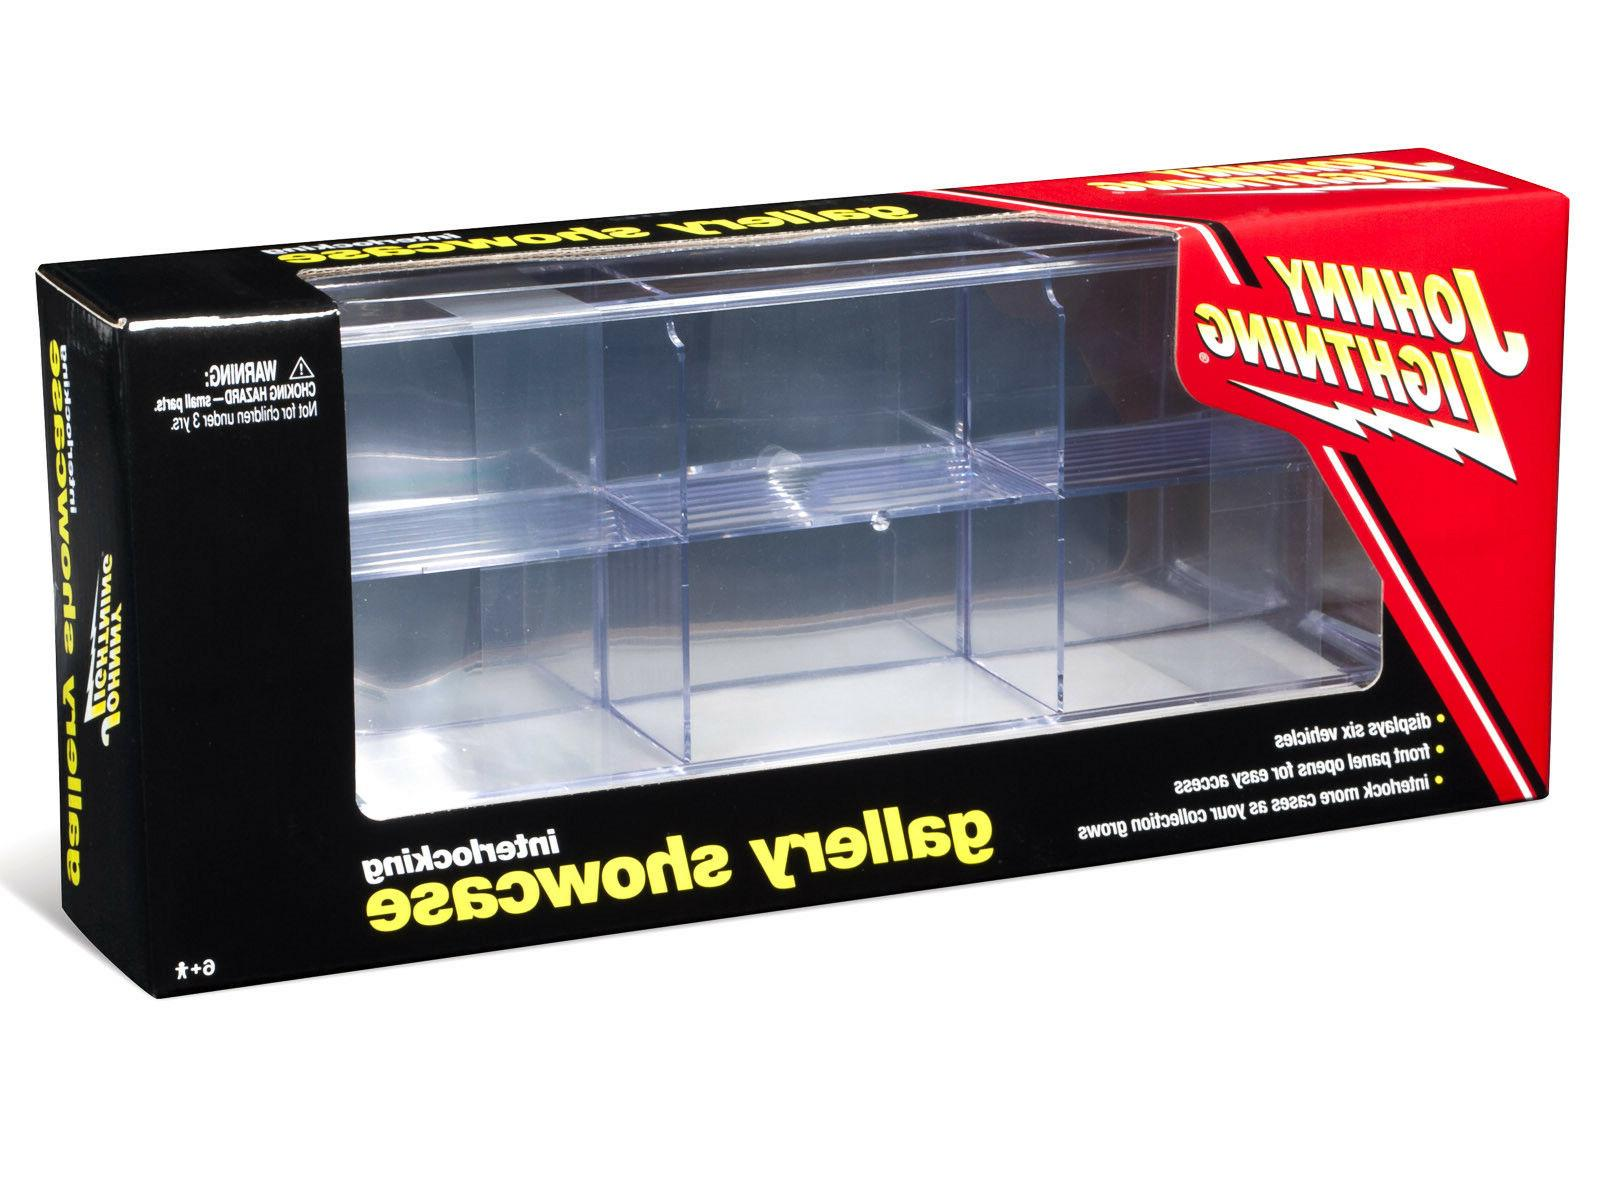 6 ACRYLIC DISPLAY SHOW CASE FOR 1/64 MODELS JOHNNY JLDC001